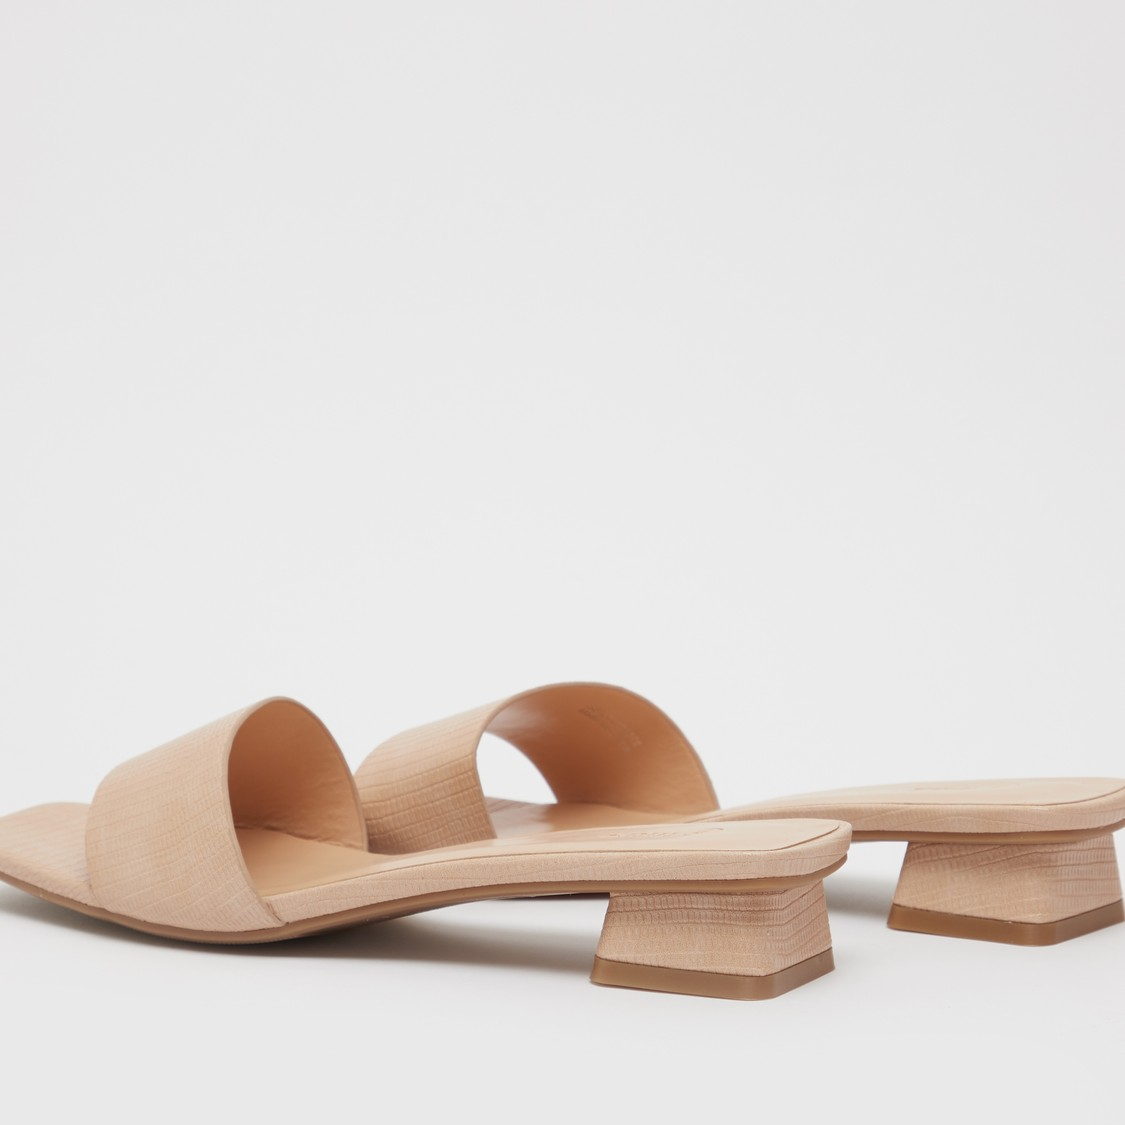 Textured Mules with Block Heels